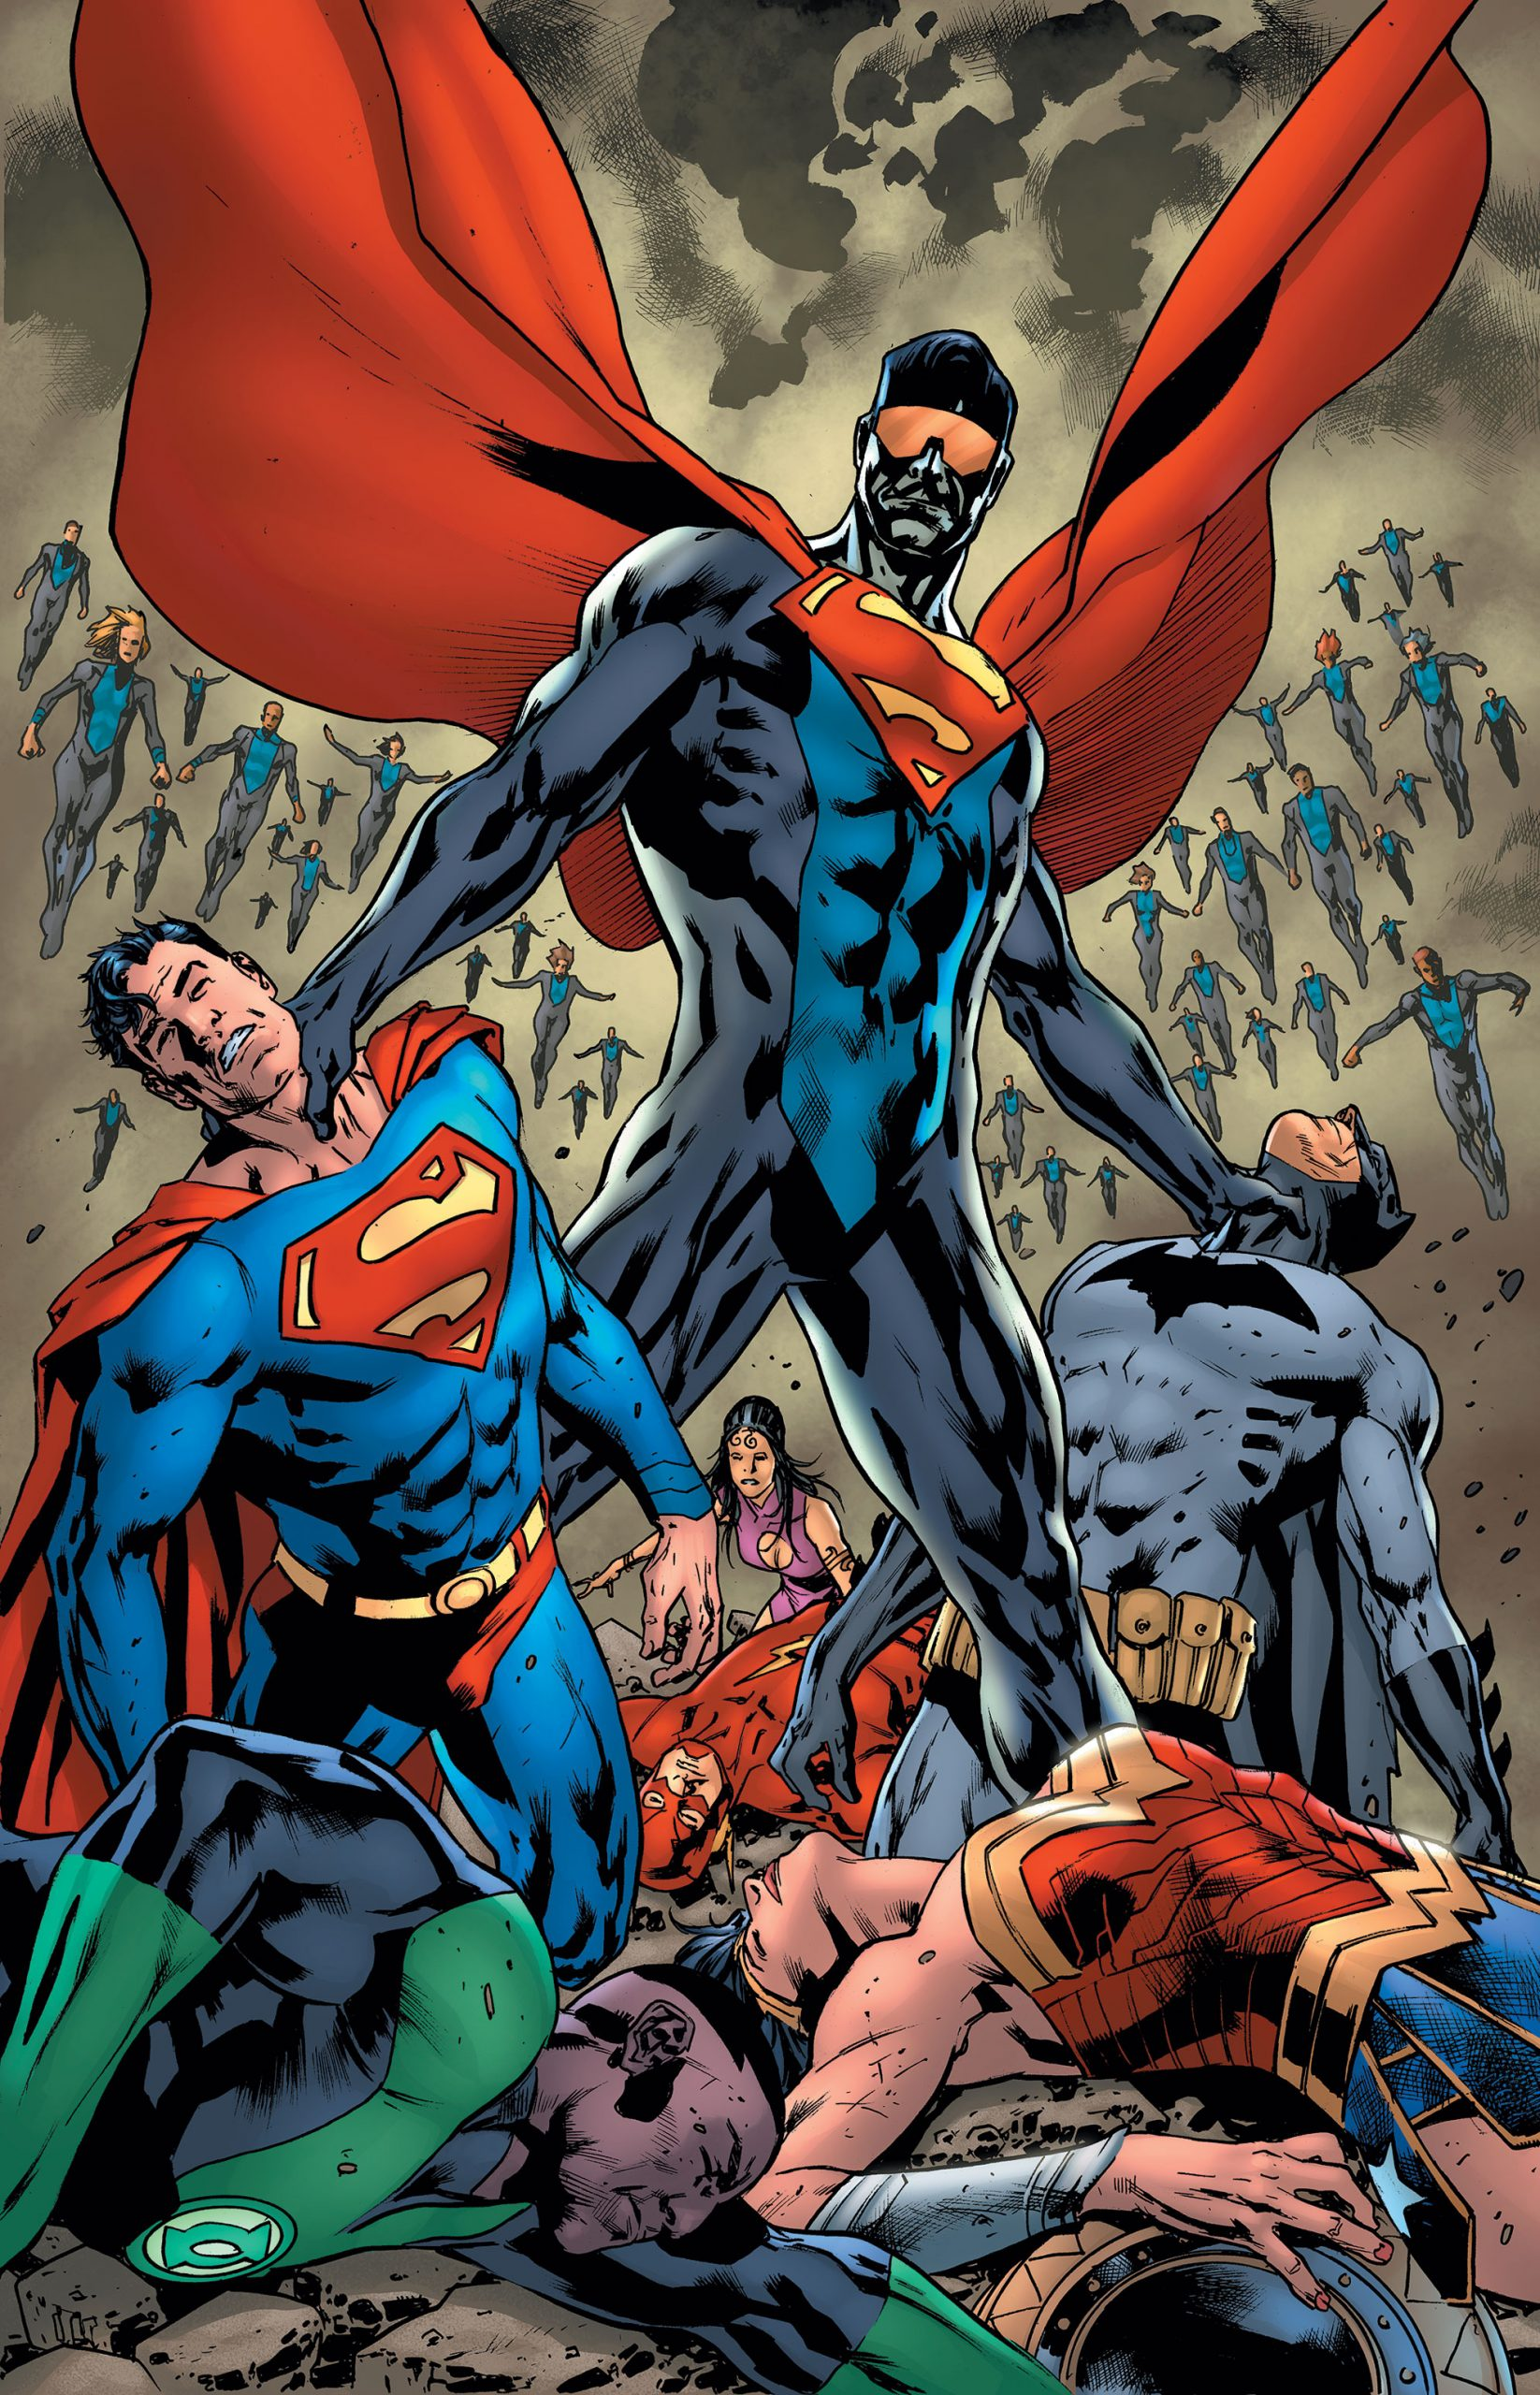 Justice League #41 Cover by Bryan Hitch